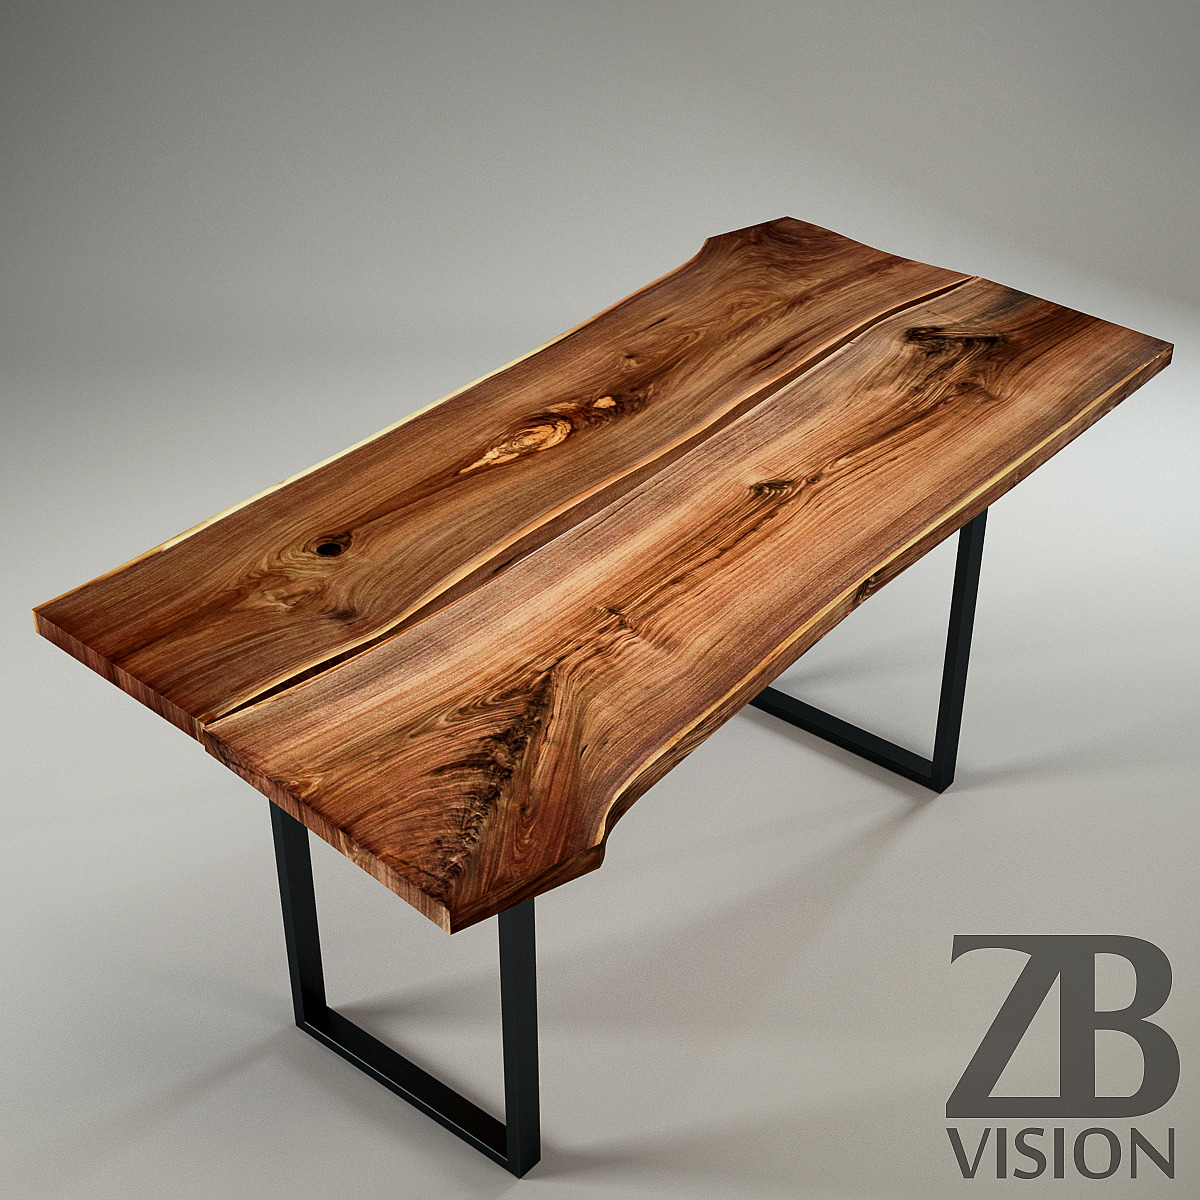 Wood slab table by ign design switzerland by luckyfox for Wood table top designs